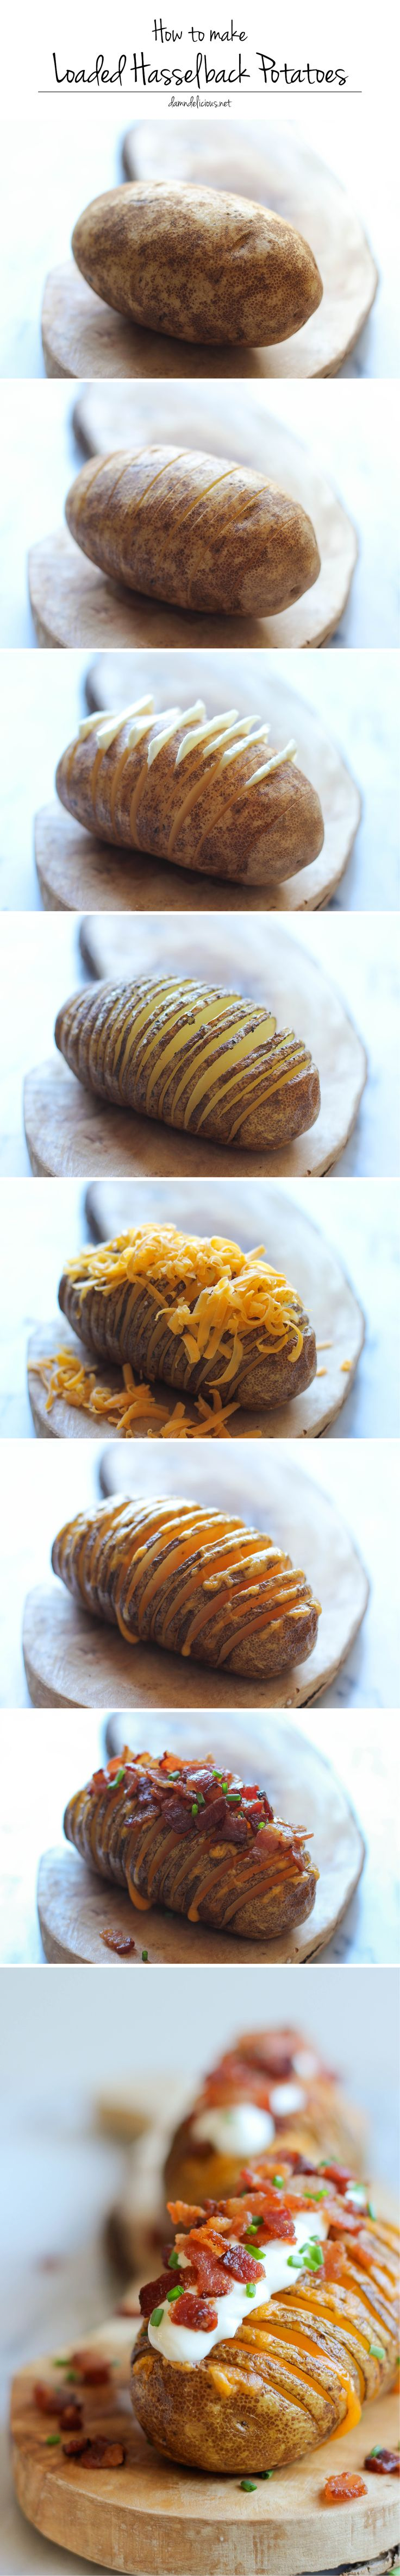 Loaded Hasselback Potatoes - A glorified baked potato loaded with melted cheddar cheese, sour cream, and crisp bacon bits!